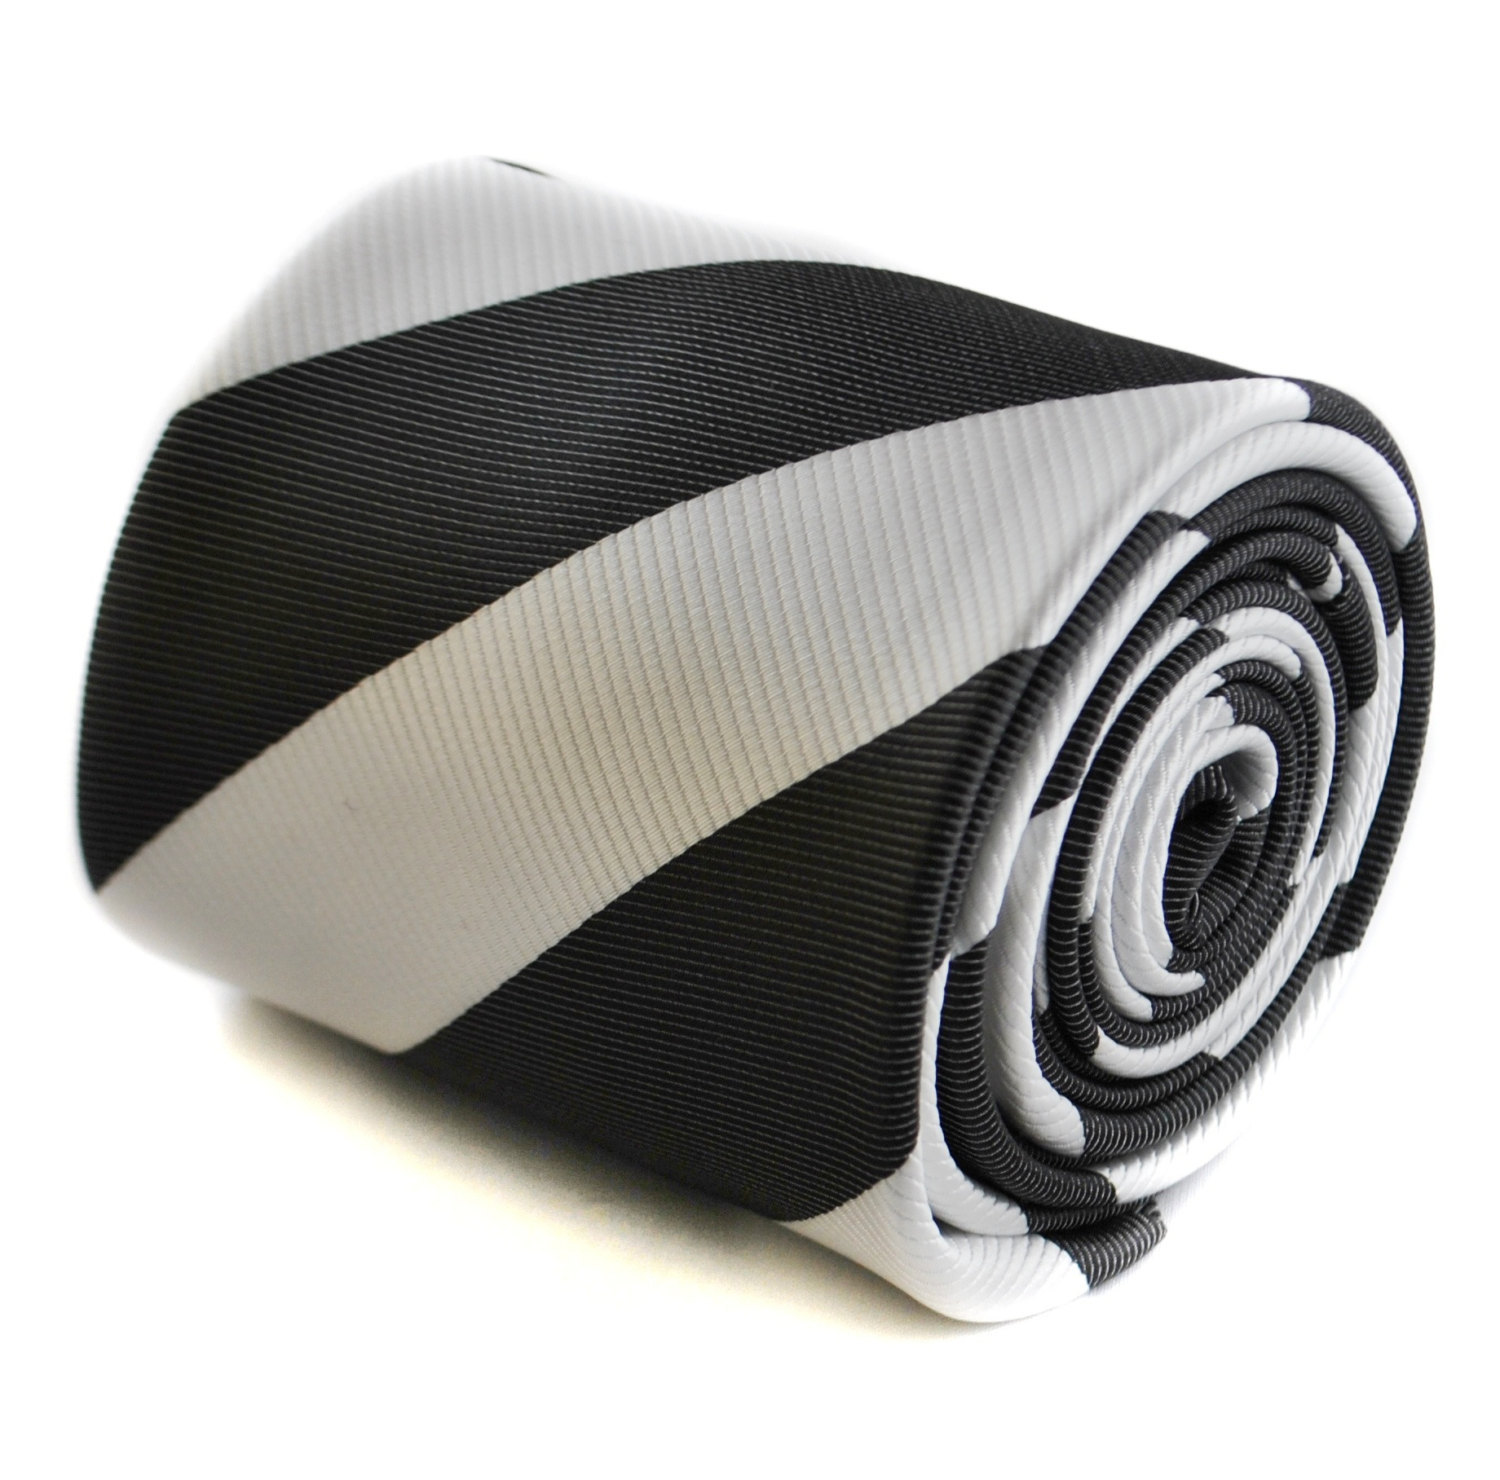 black and white barber striped tie with floral design to the rear by Frederick T